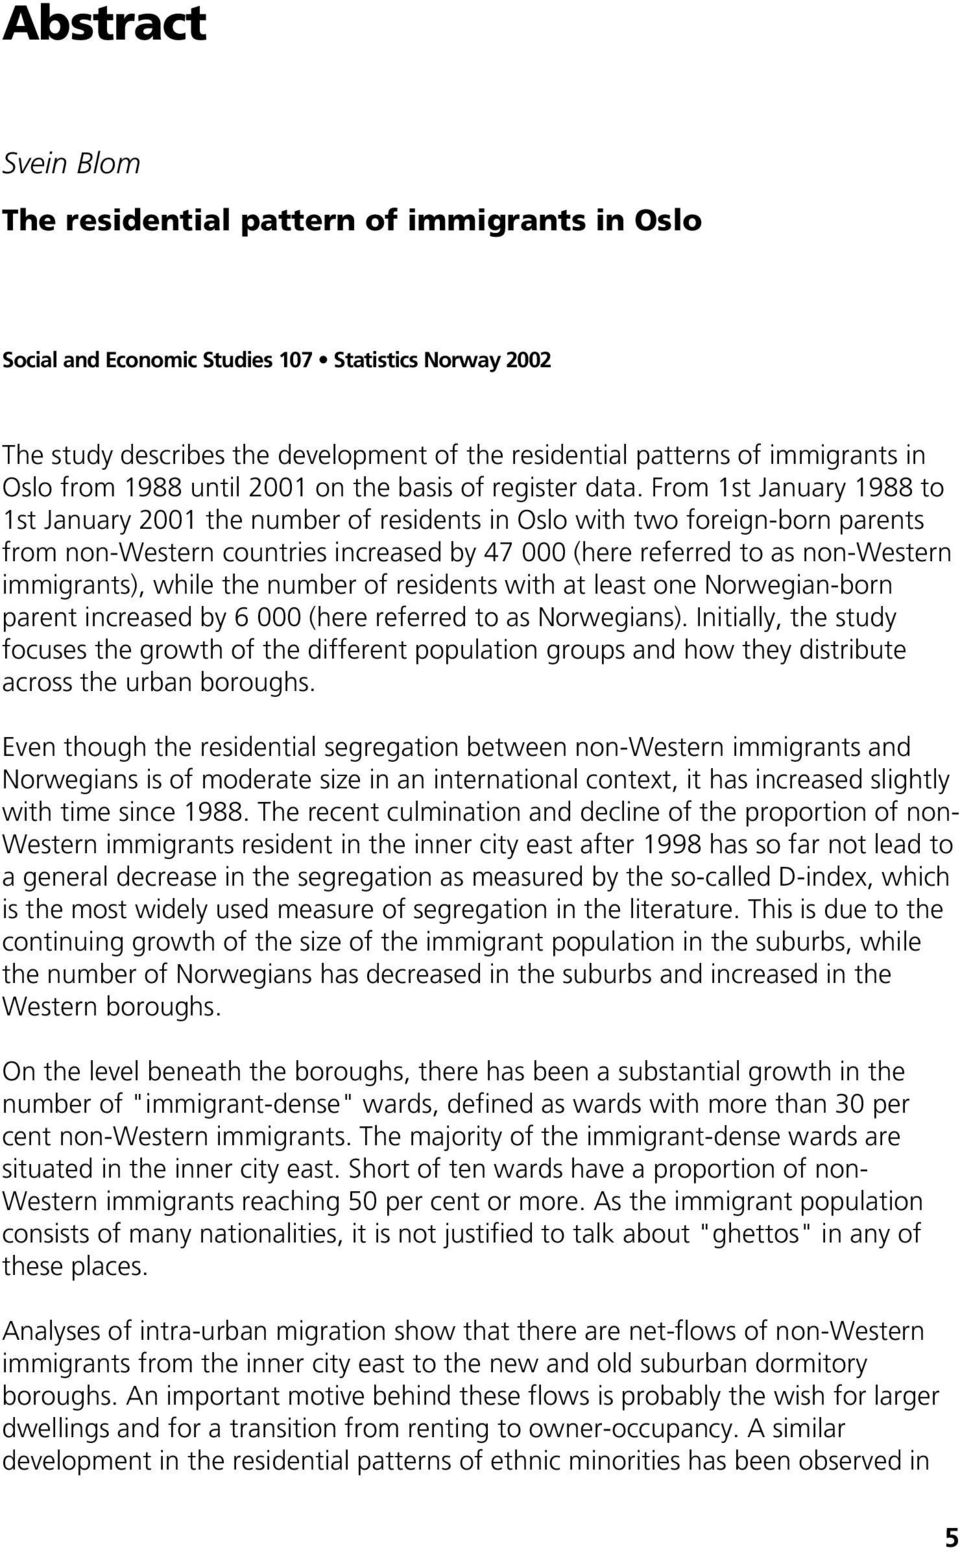 From 1st January 1988 to 1st January 2001 the number of residents in Oslo with two foreign-born parents from non-western countries increased by 47 000 (here referred to as non-western immigrants),